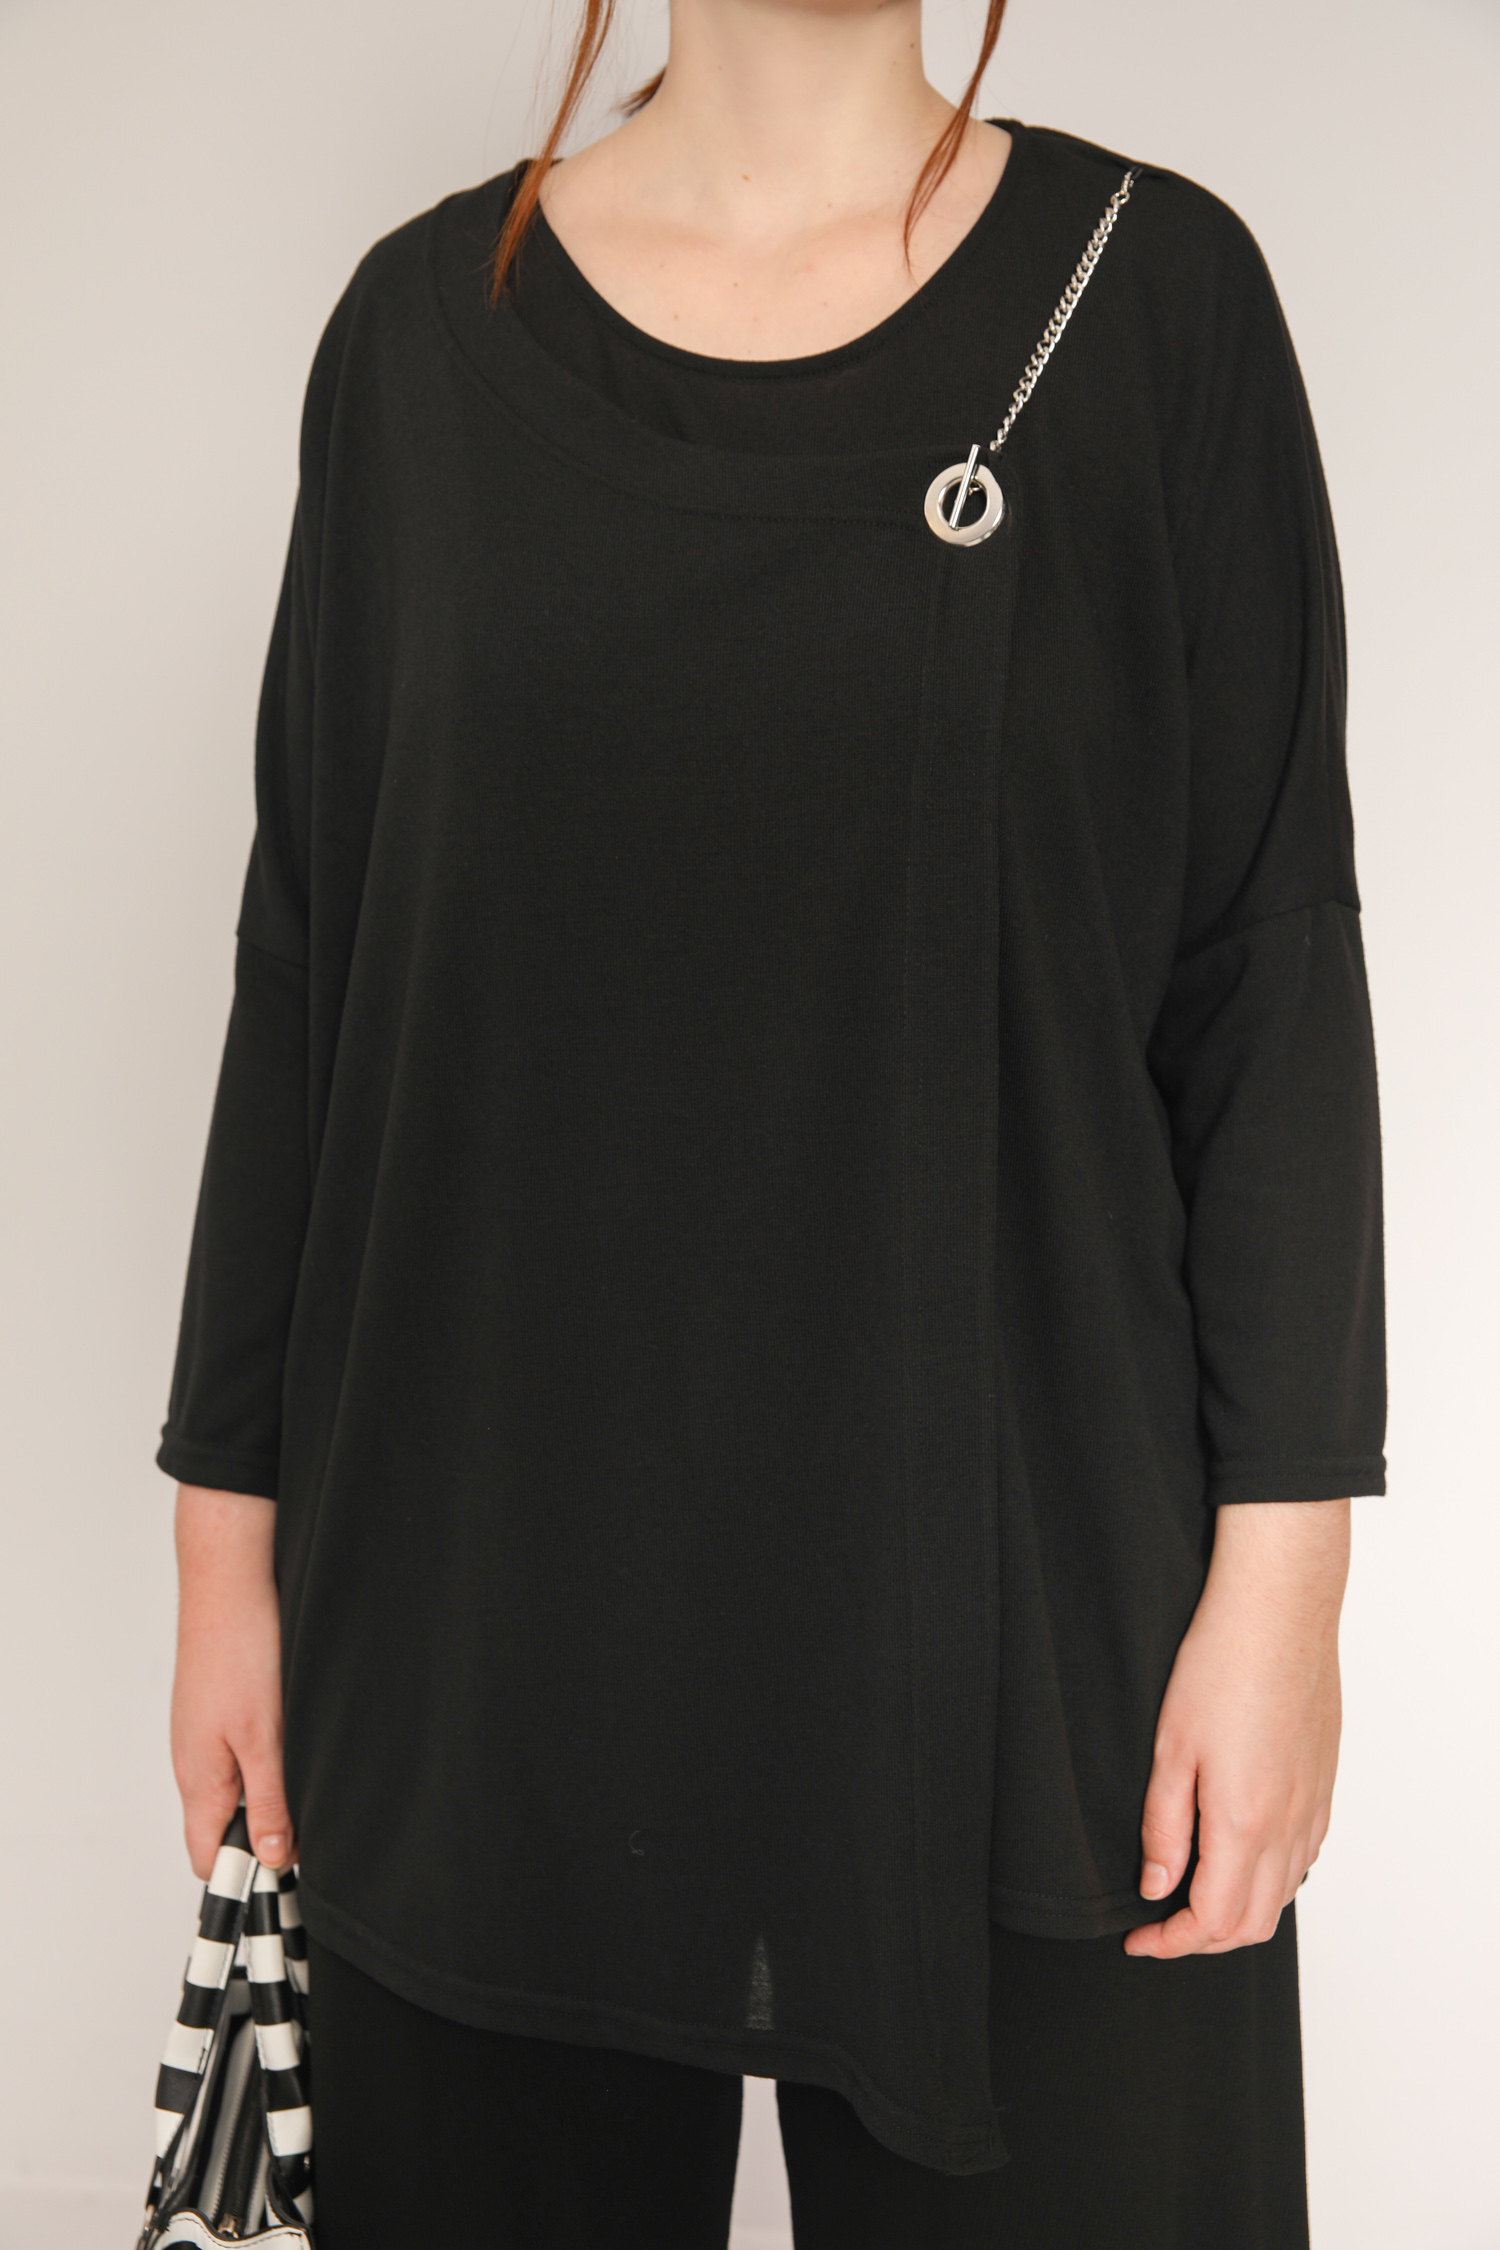 Fine knit sweater with chain